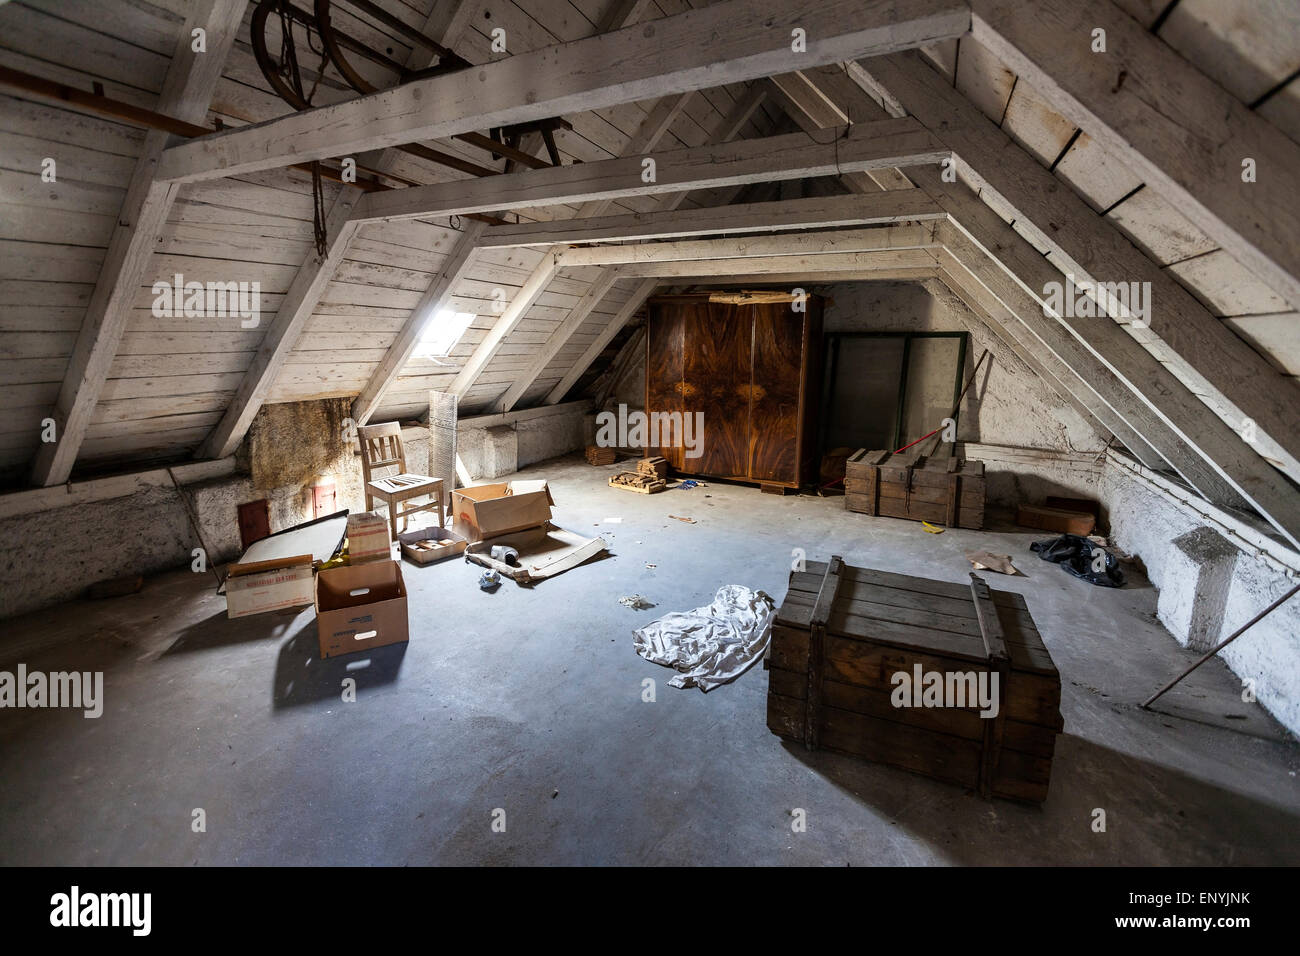 Old attic with hidden secrets of an abandoned house - Stock Image